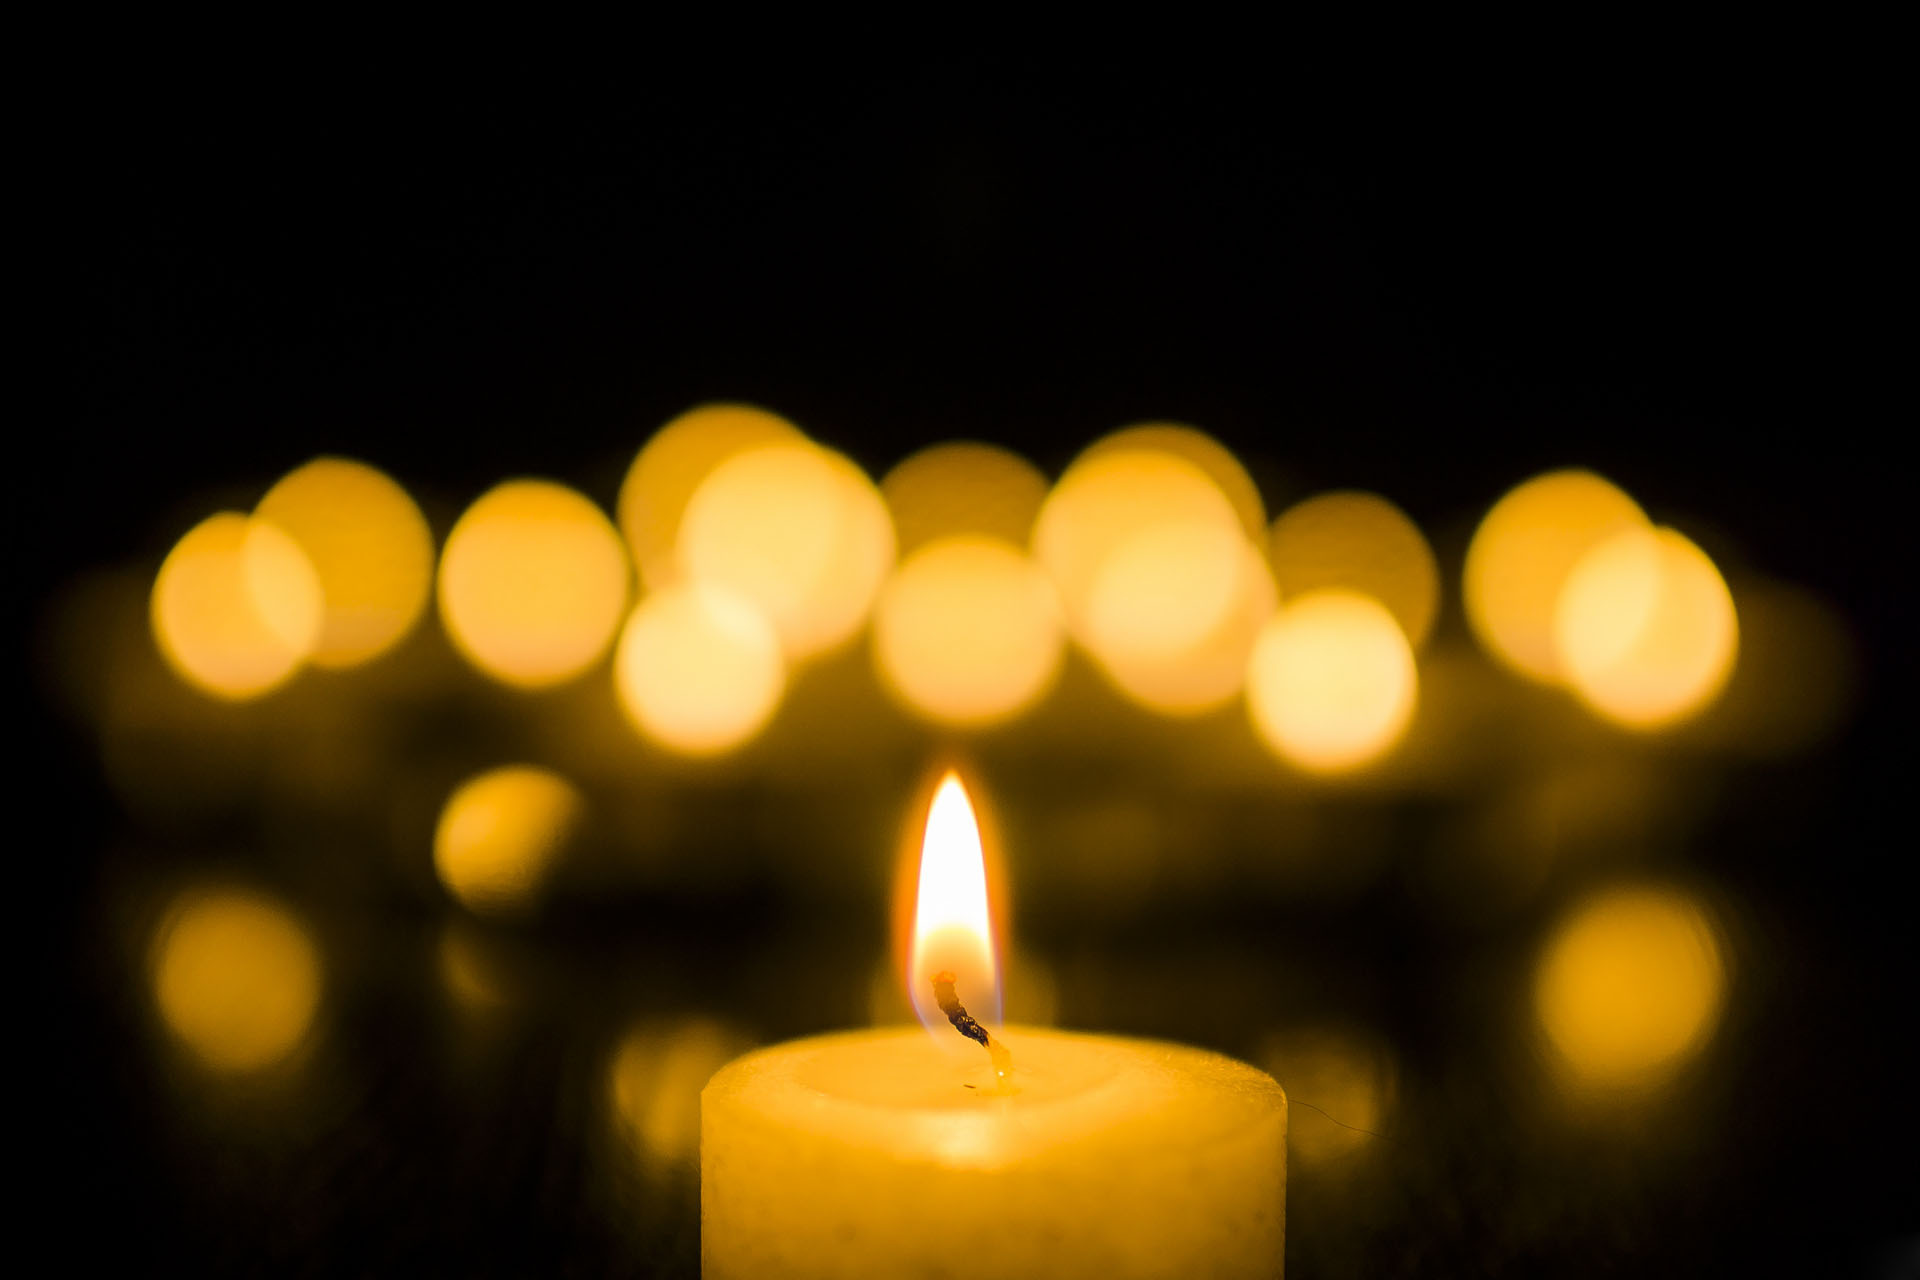 Cool Candle Wallpaper Photography   candle wallpaper 1920x1280